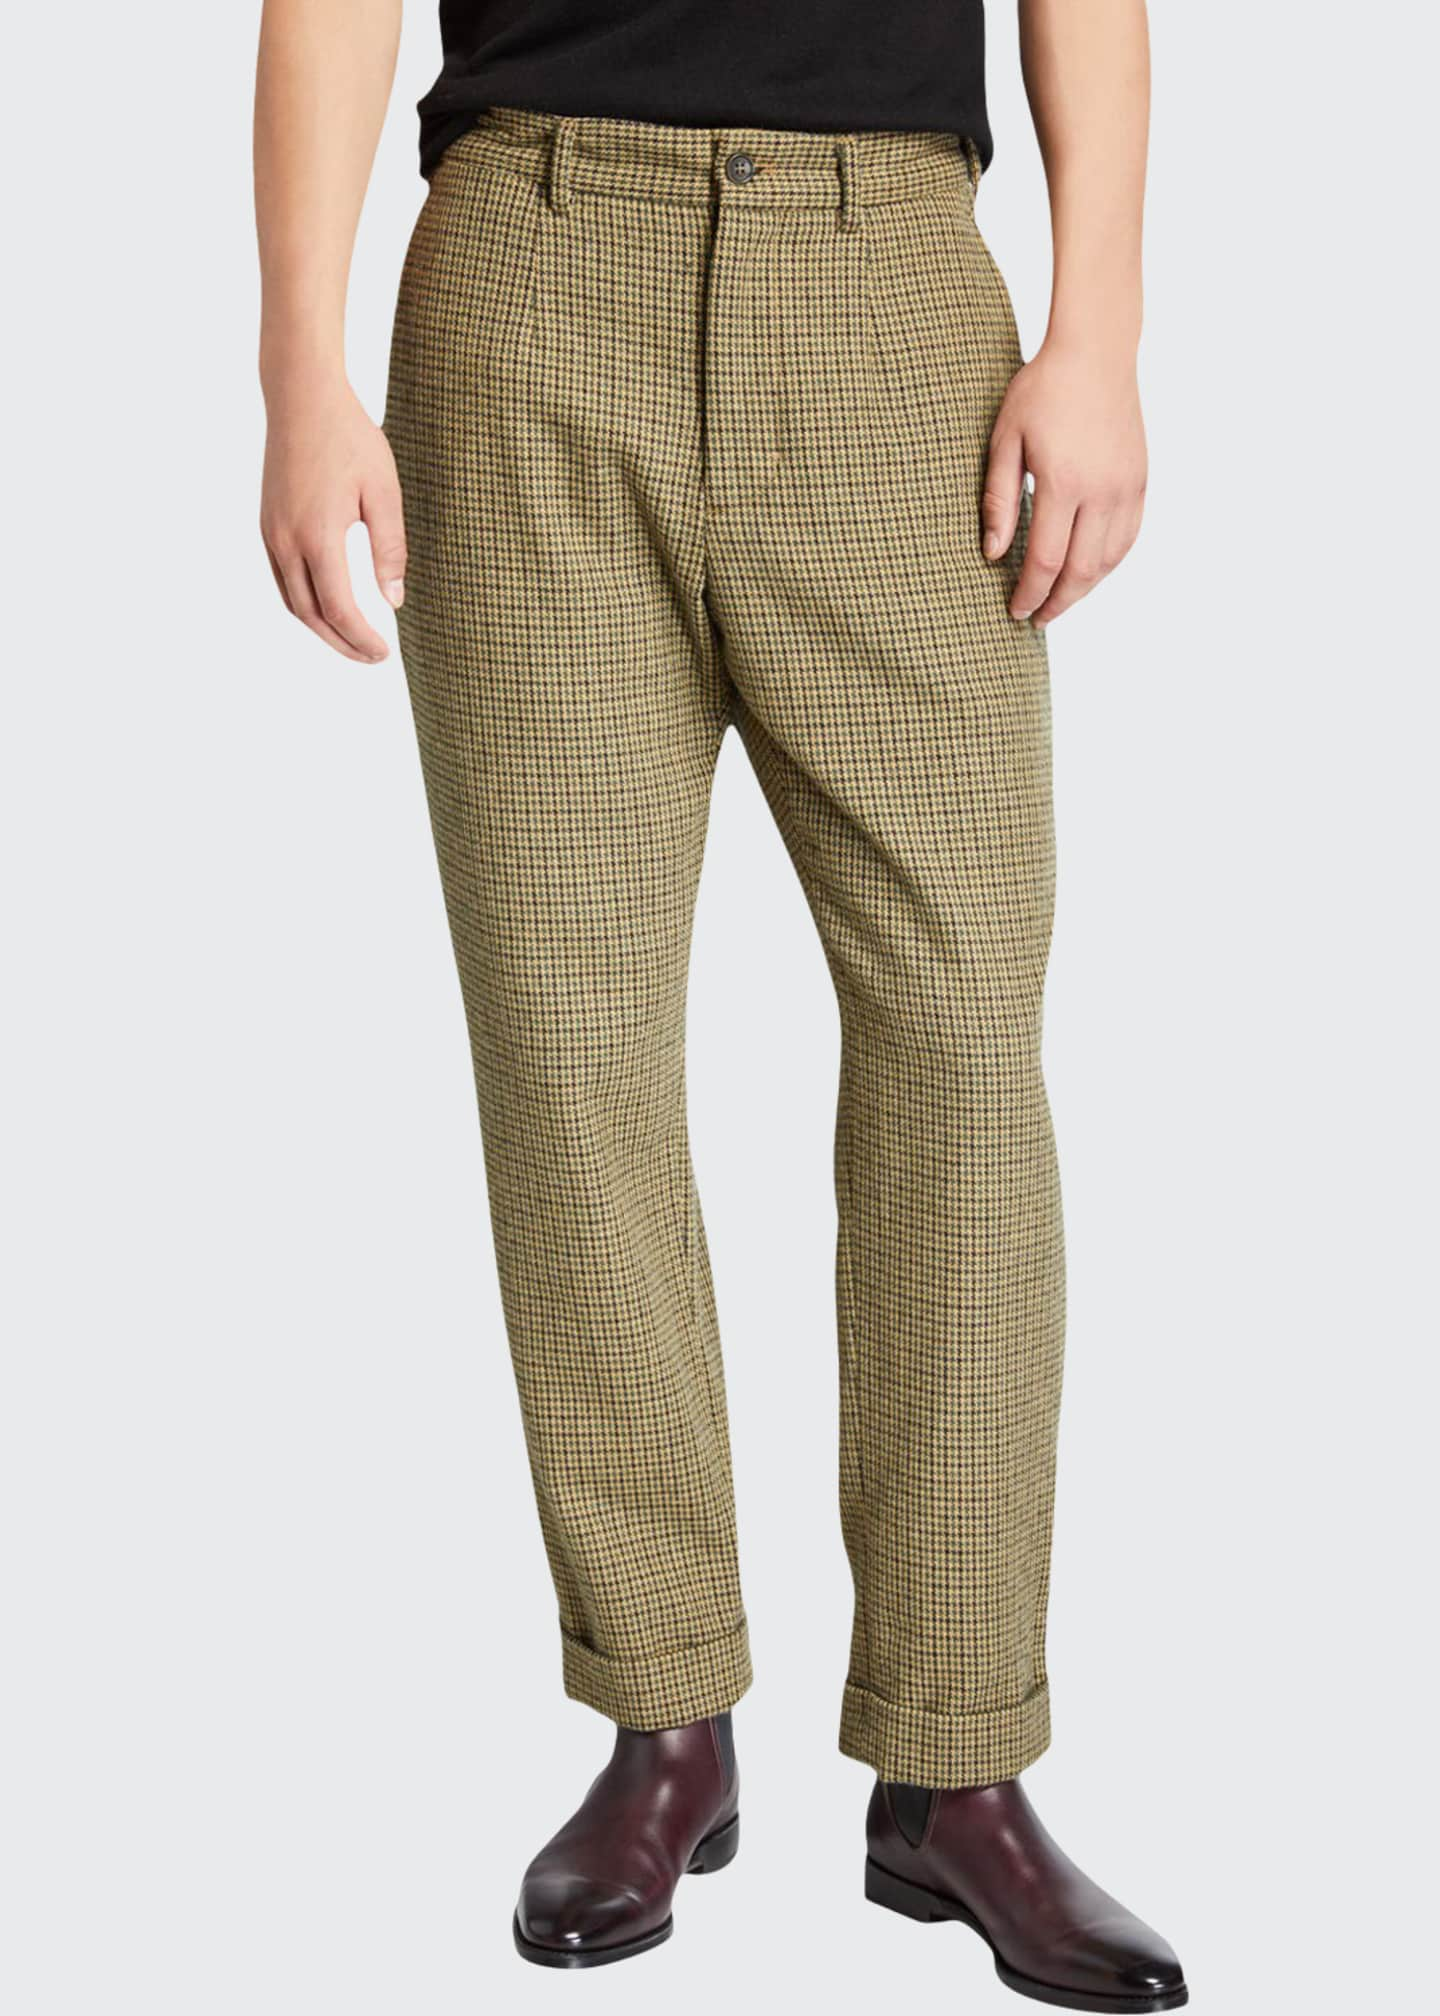 Engineered Garments Men's Andover Check Pleated Pants,